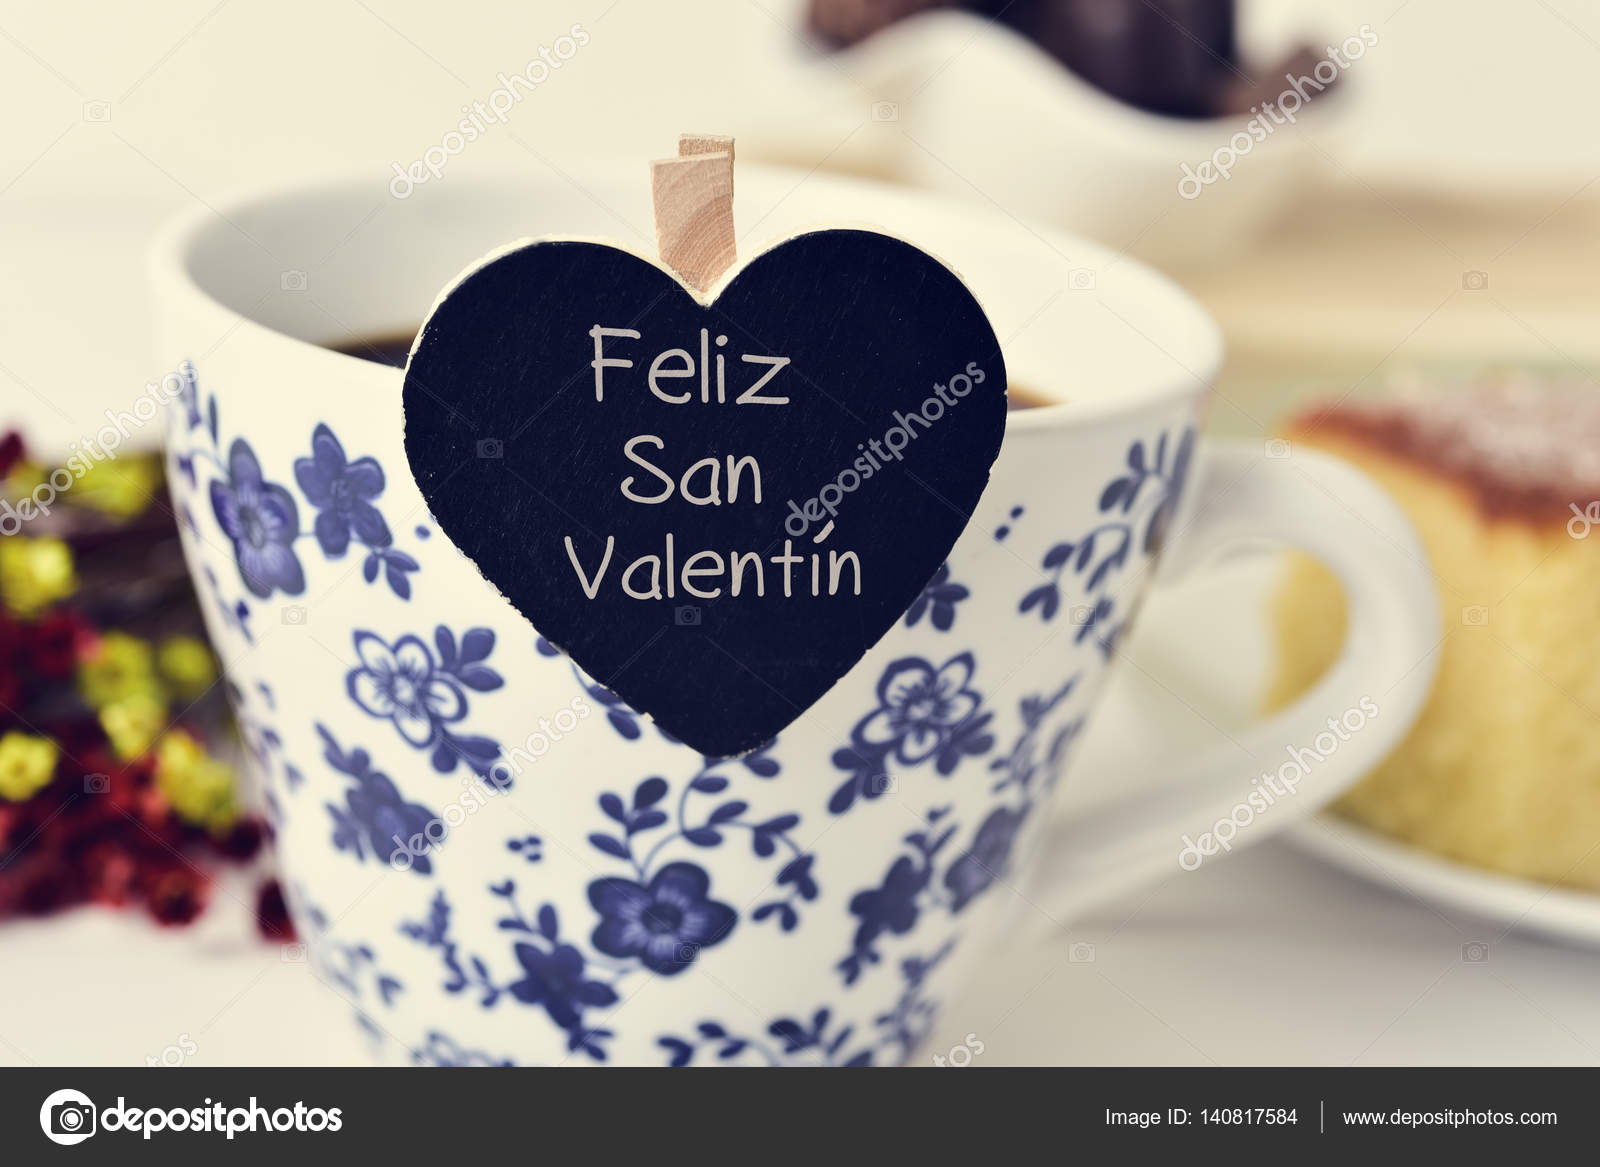 Closeup Of A Heart Shaped Signboard With The Text Feliz San Valentin, Happy  Valentines Day Written In Spanish, In A Cup Of Coffee, On A Table Set For  ...